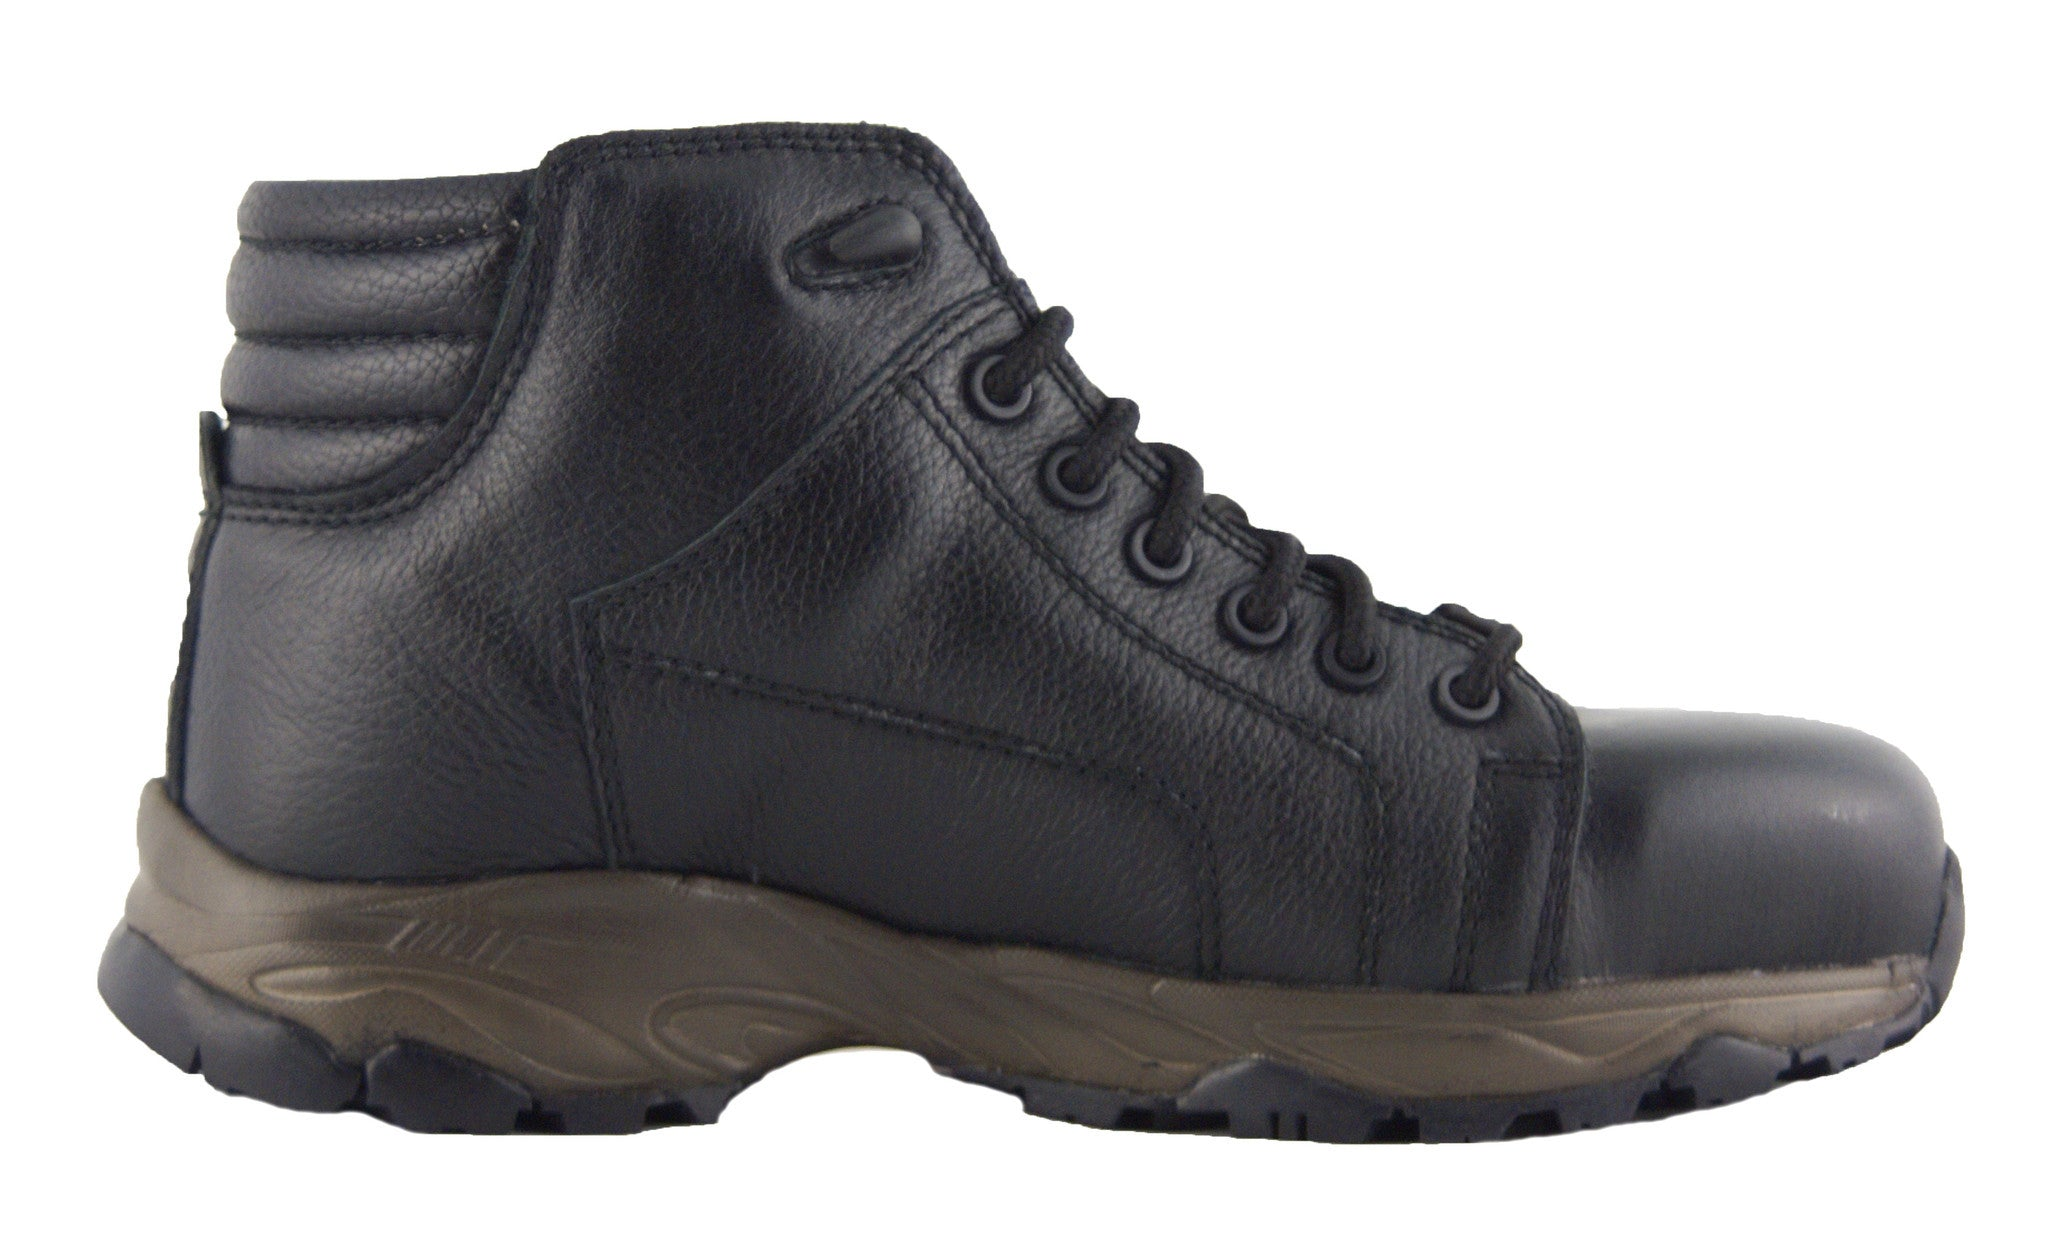 Srs Grady Mens Composite Toe Oil Resistant Work Shoes Slip